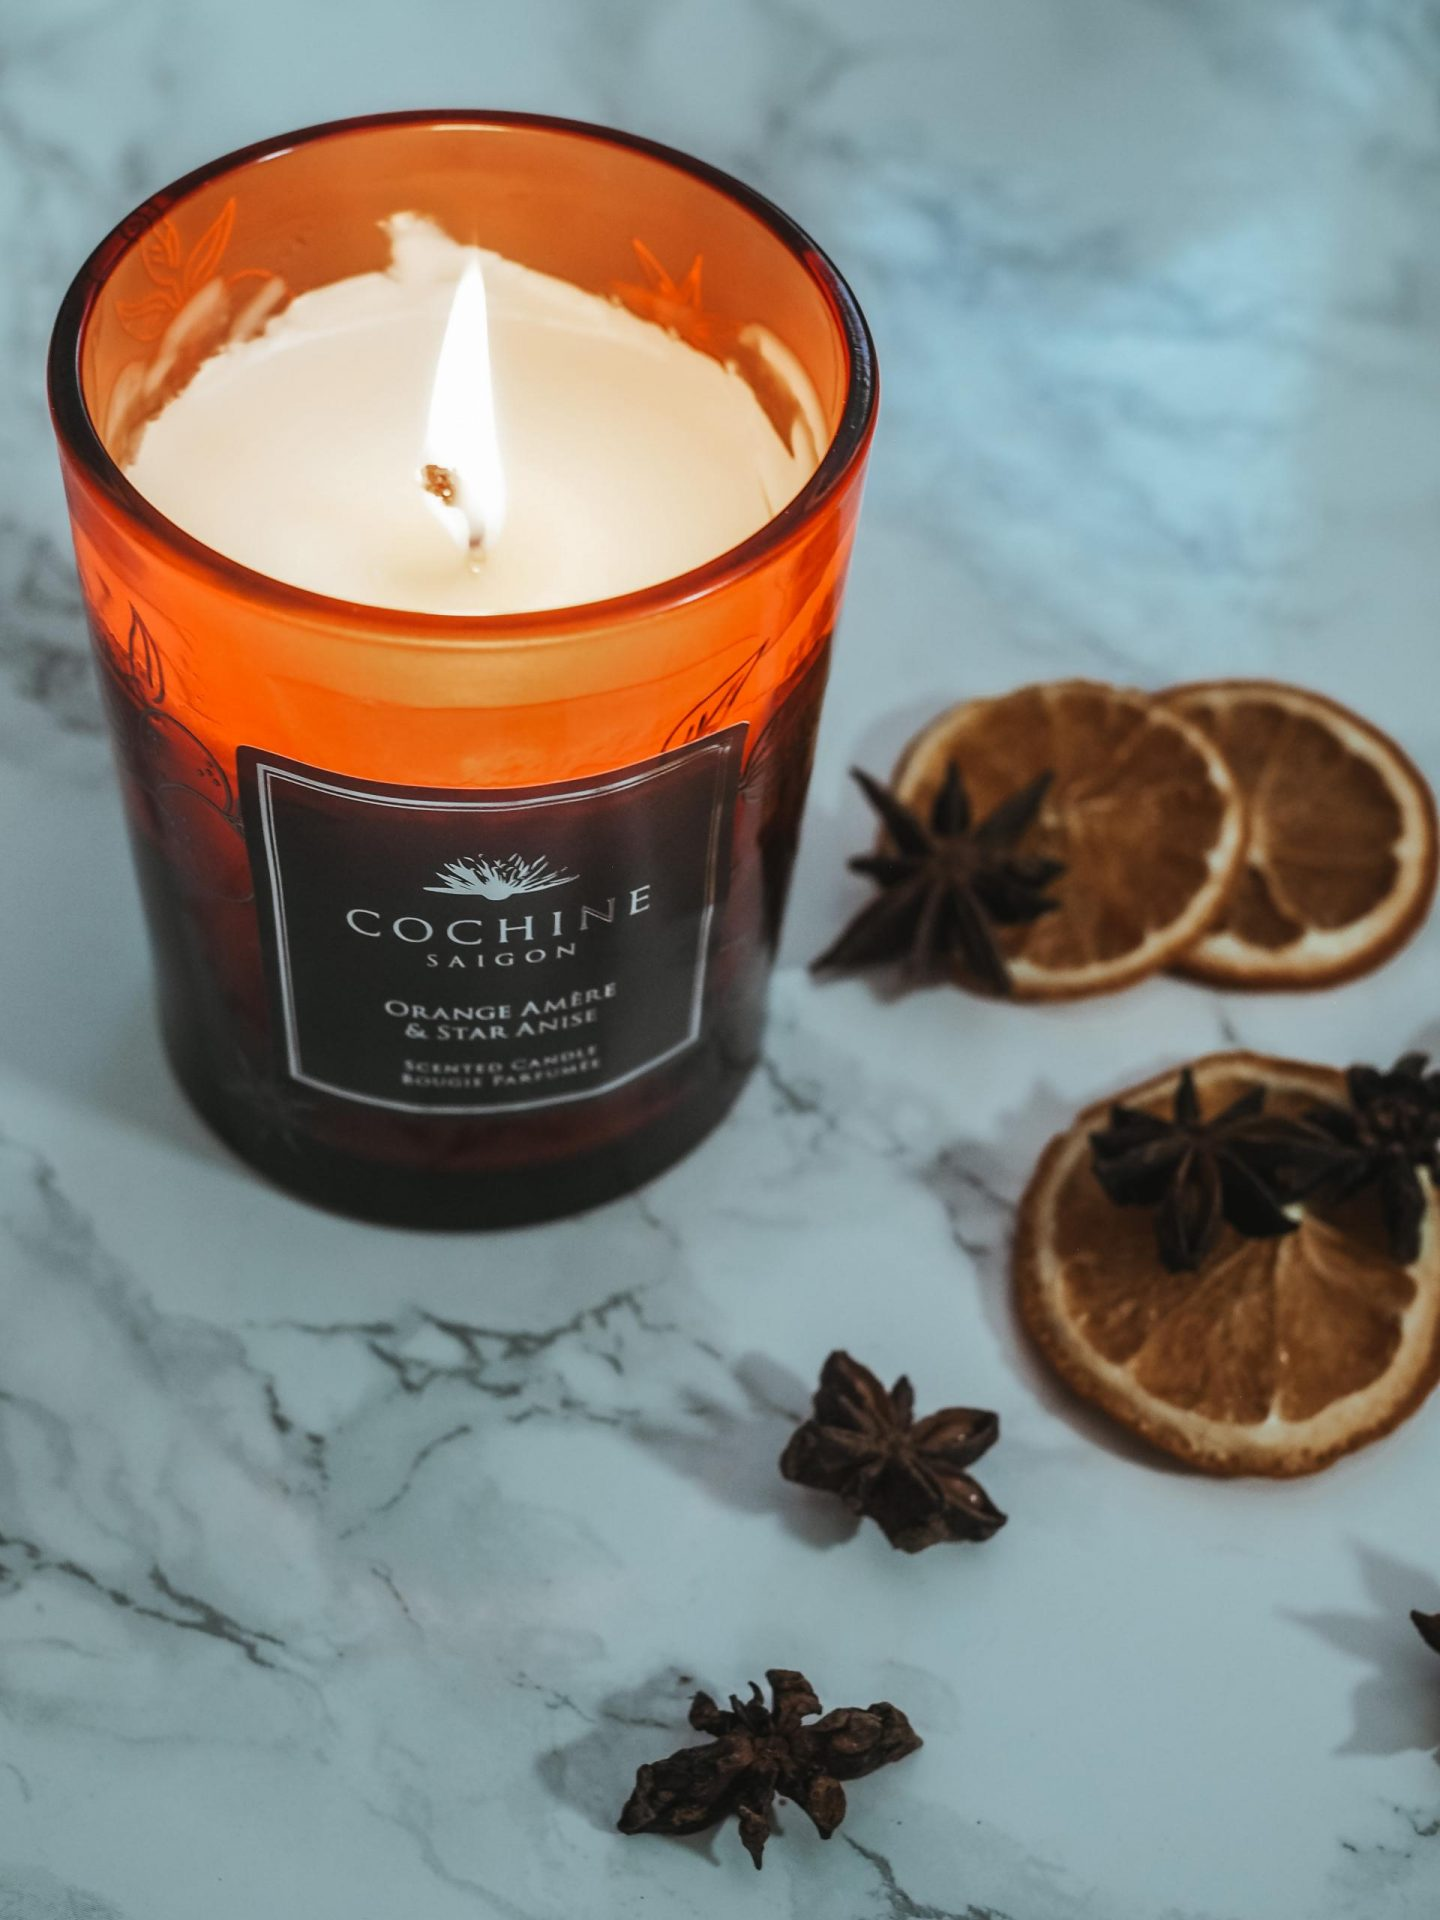 Cochine Orange AmÈre and Star Anise Scented Candle